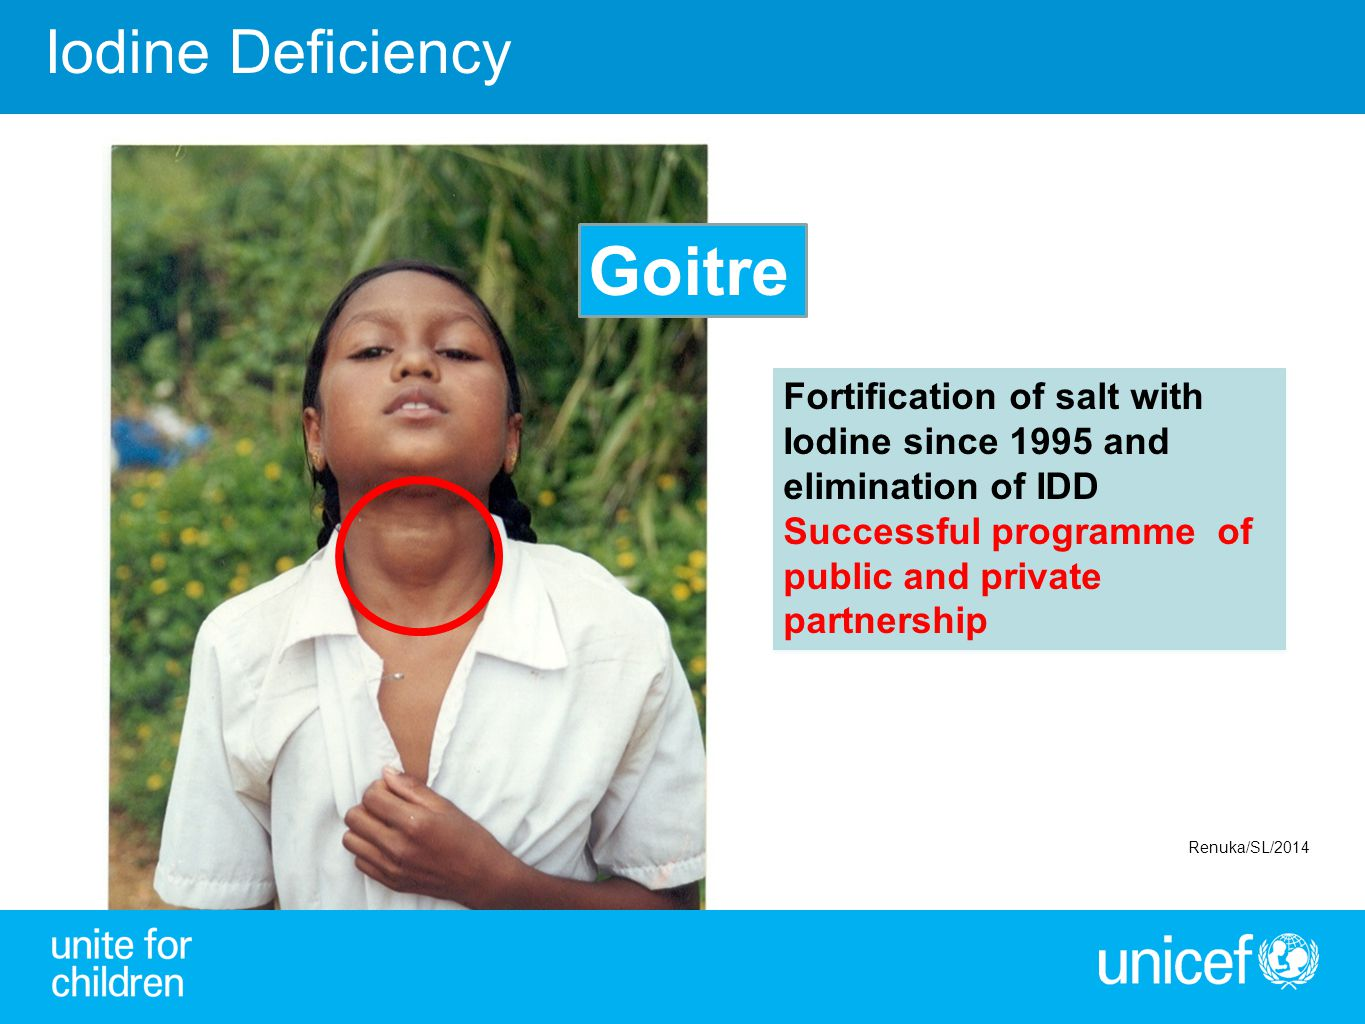 Fortification of salt with Iodine since 1995 and elimination of IDD Successful programme of public and private partnership Fortification of salt with